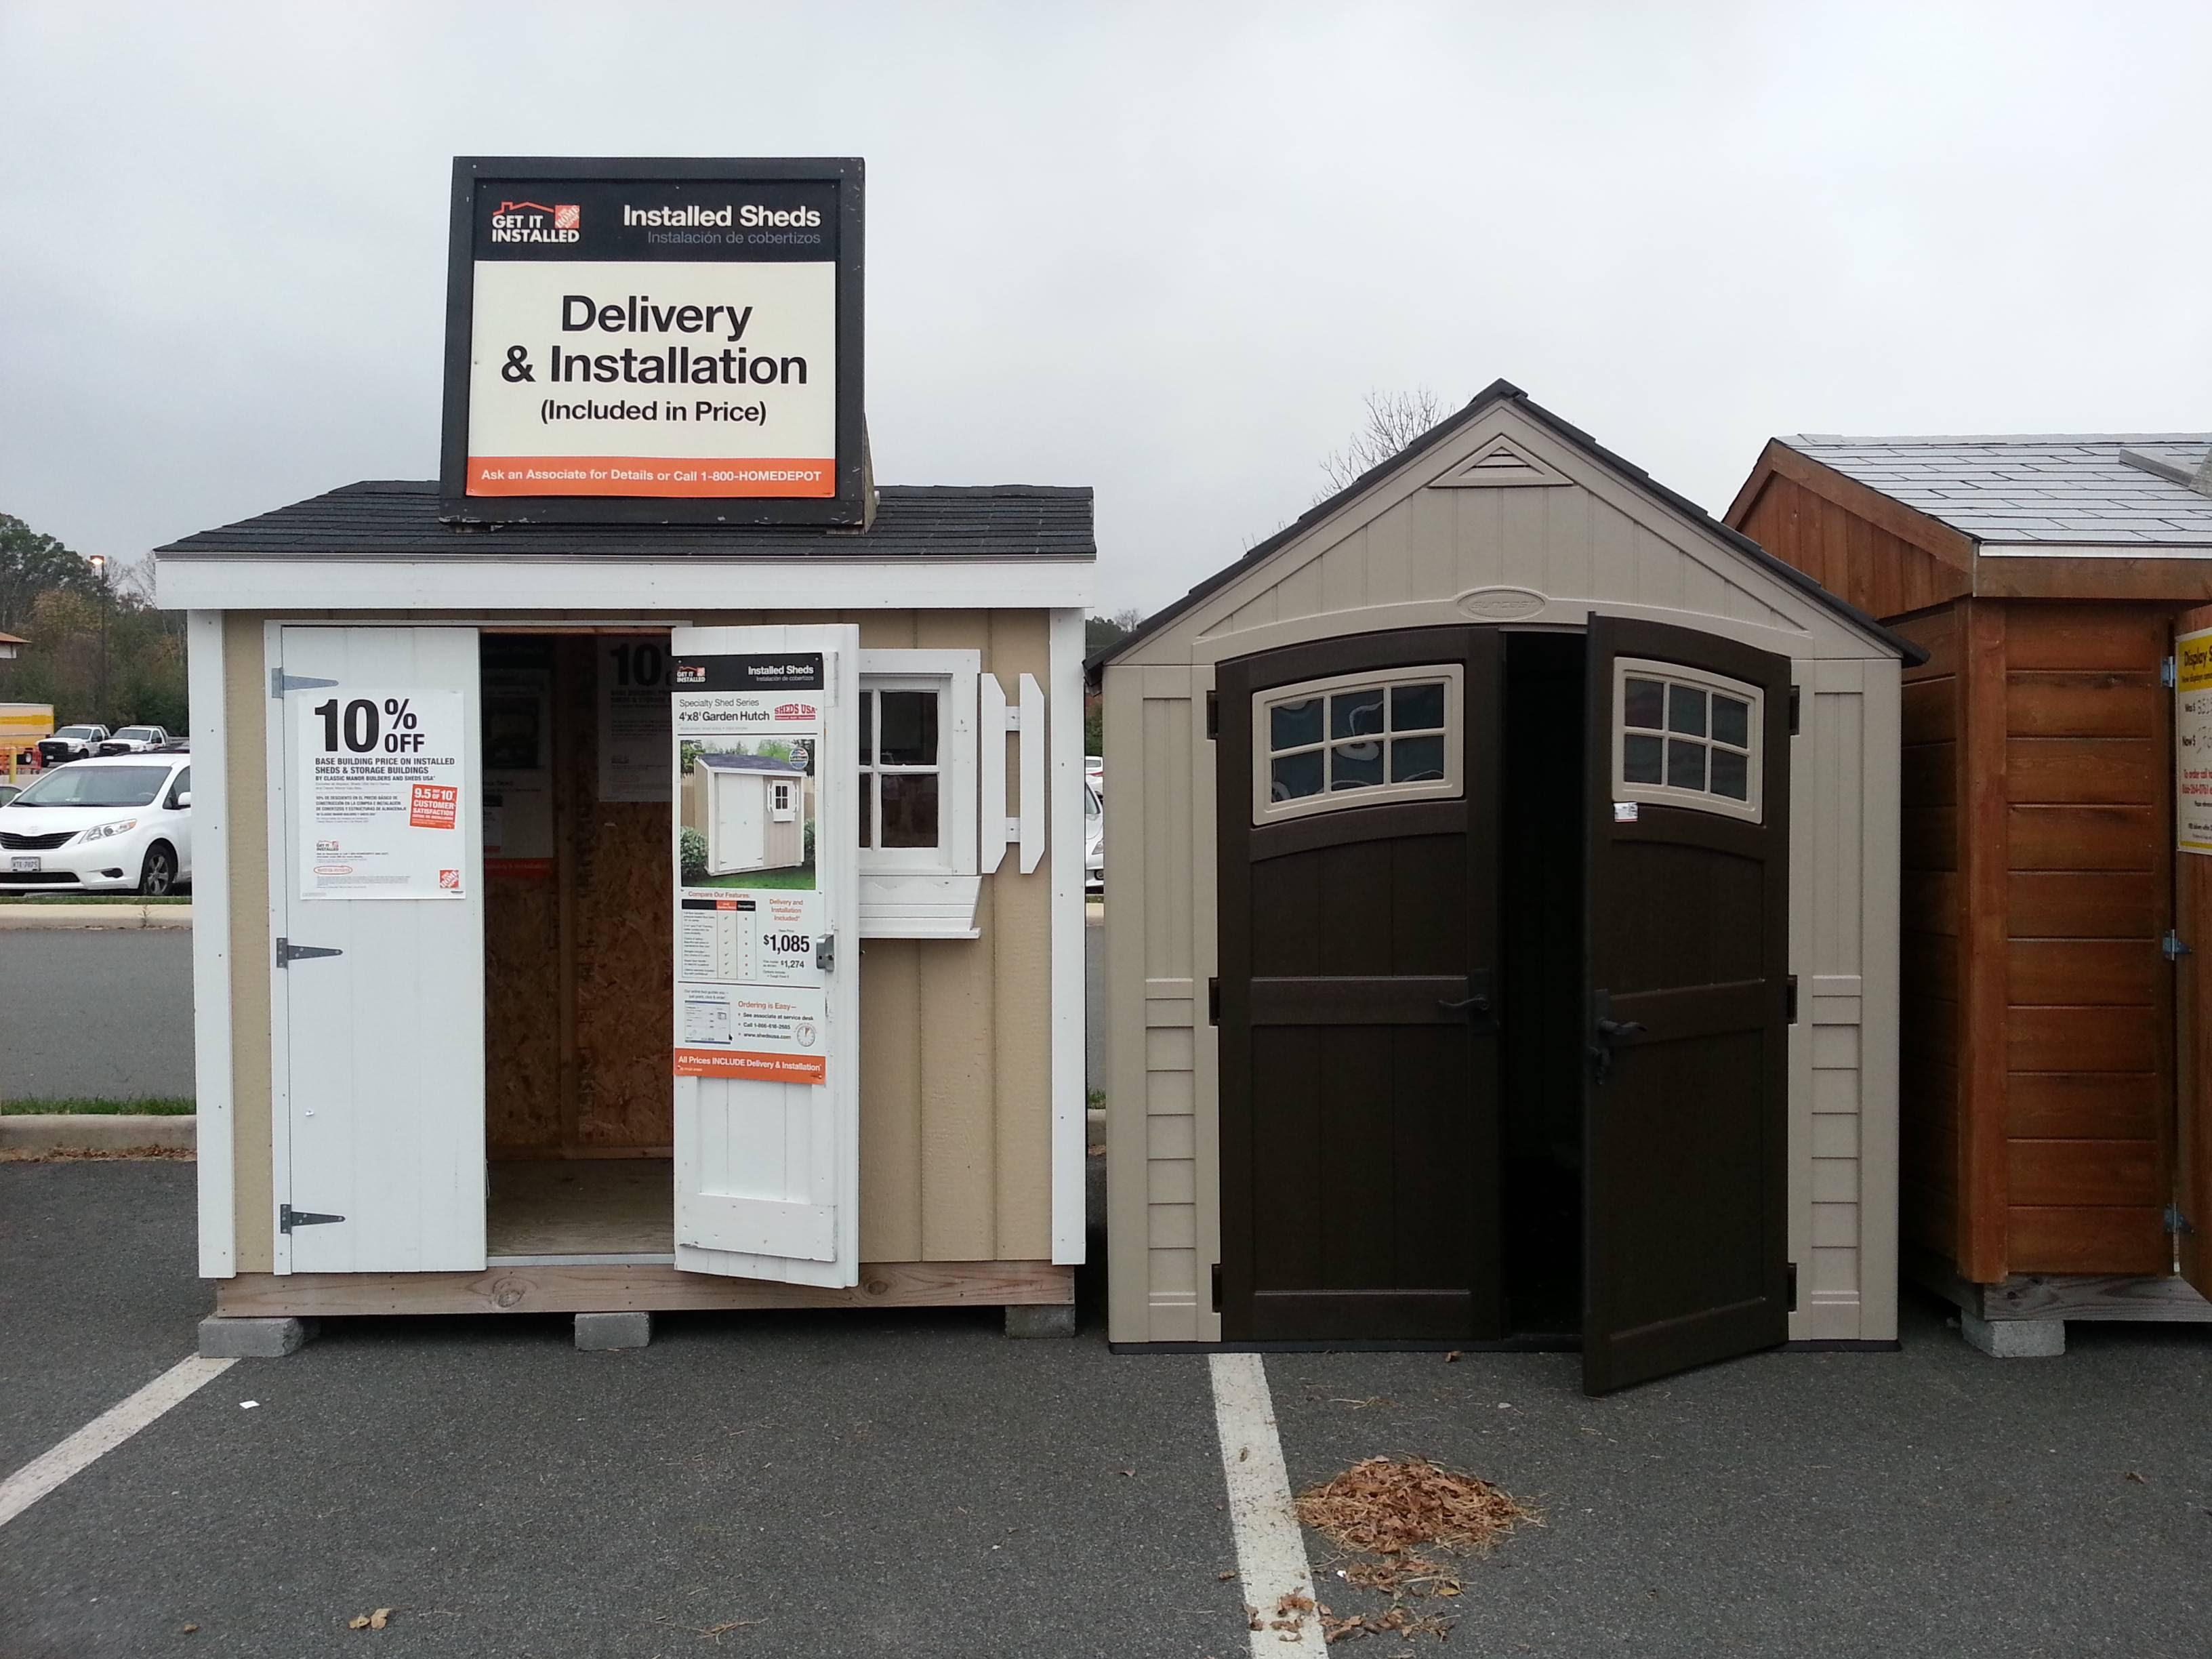 Home depot sheds installed